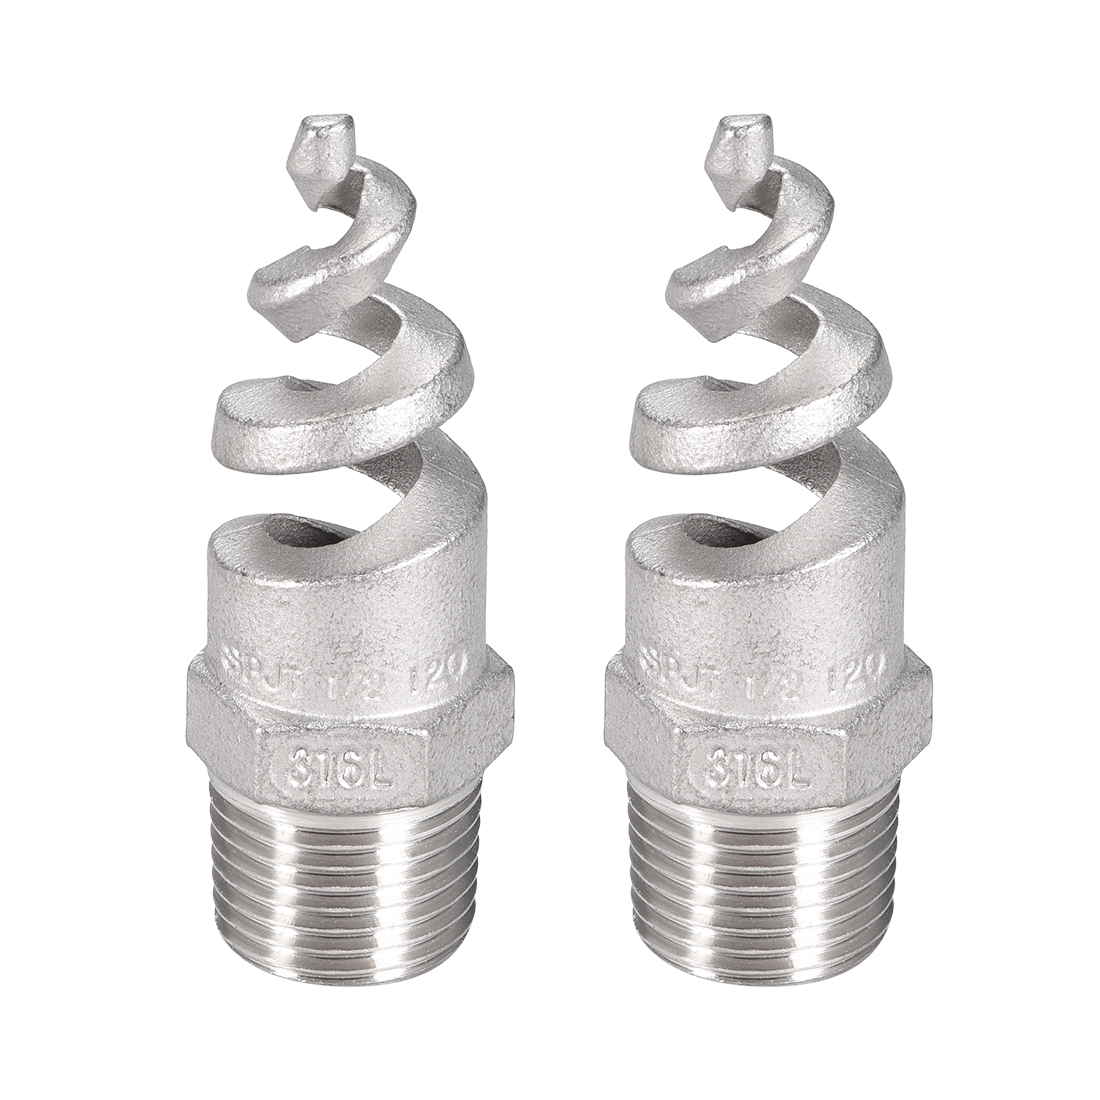 Spiral Nozzle, 1/2BSPT 316 Stainless Steel Mist Sprinkler, 2 Pcs (Silver Tone)